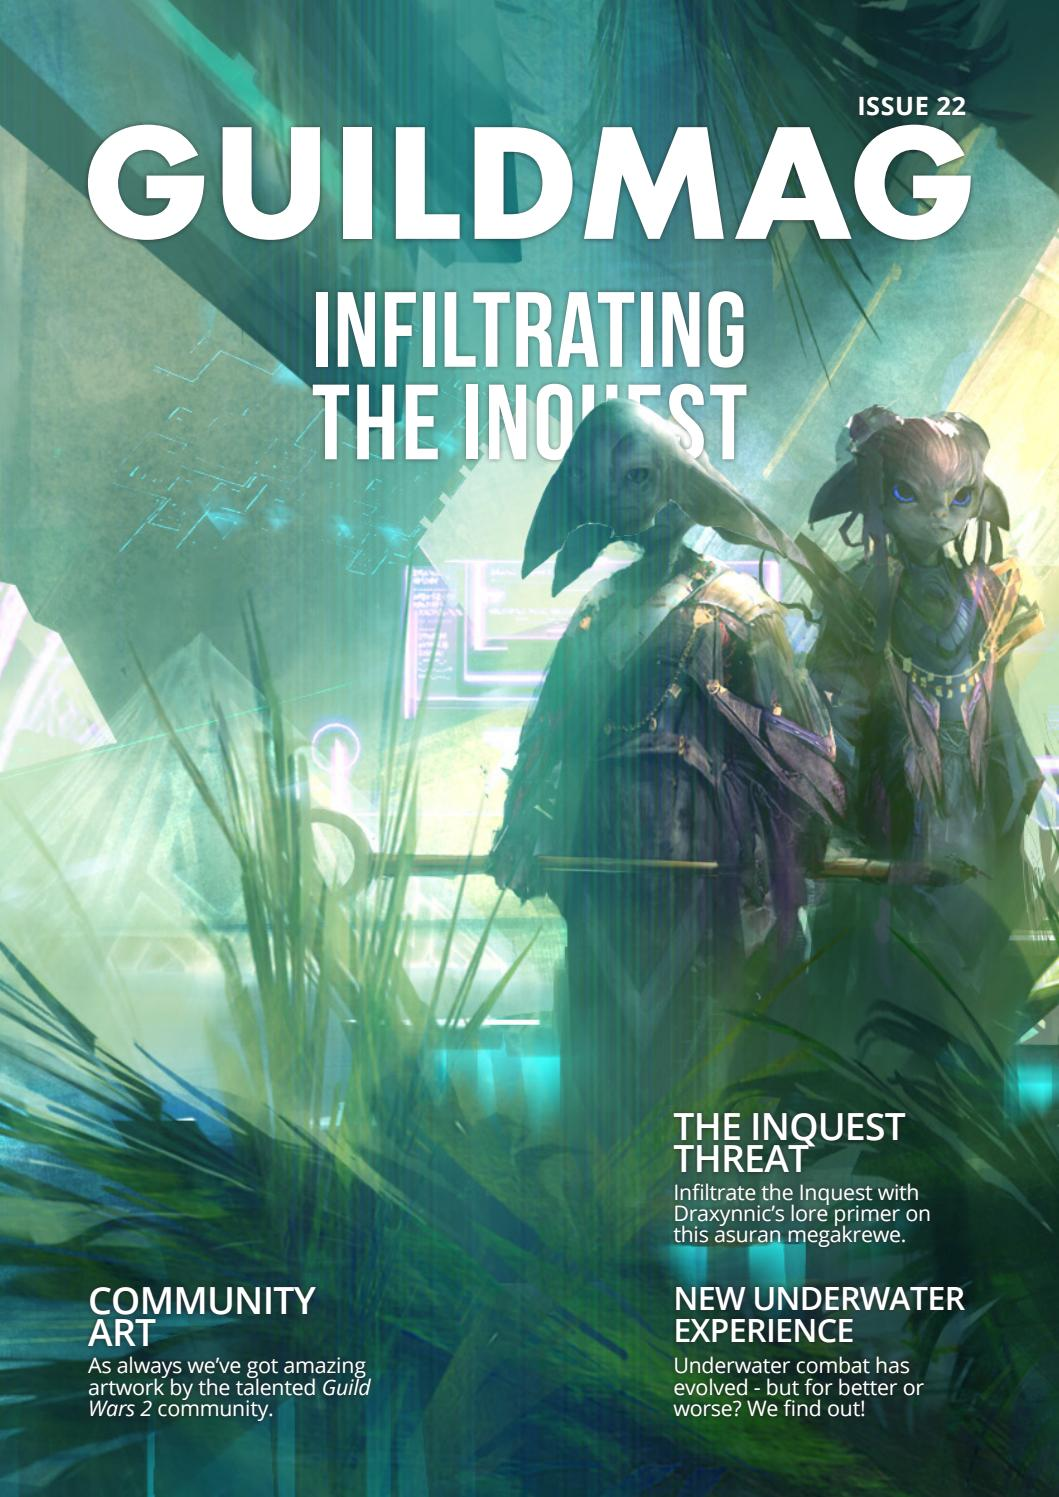 GuildMag Issue 22: Infiltrating the Inquest by GuildMag - issuu